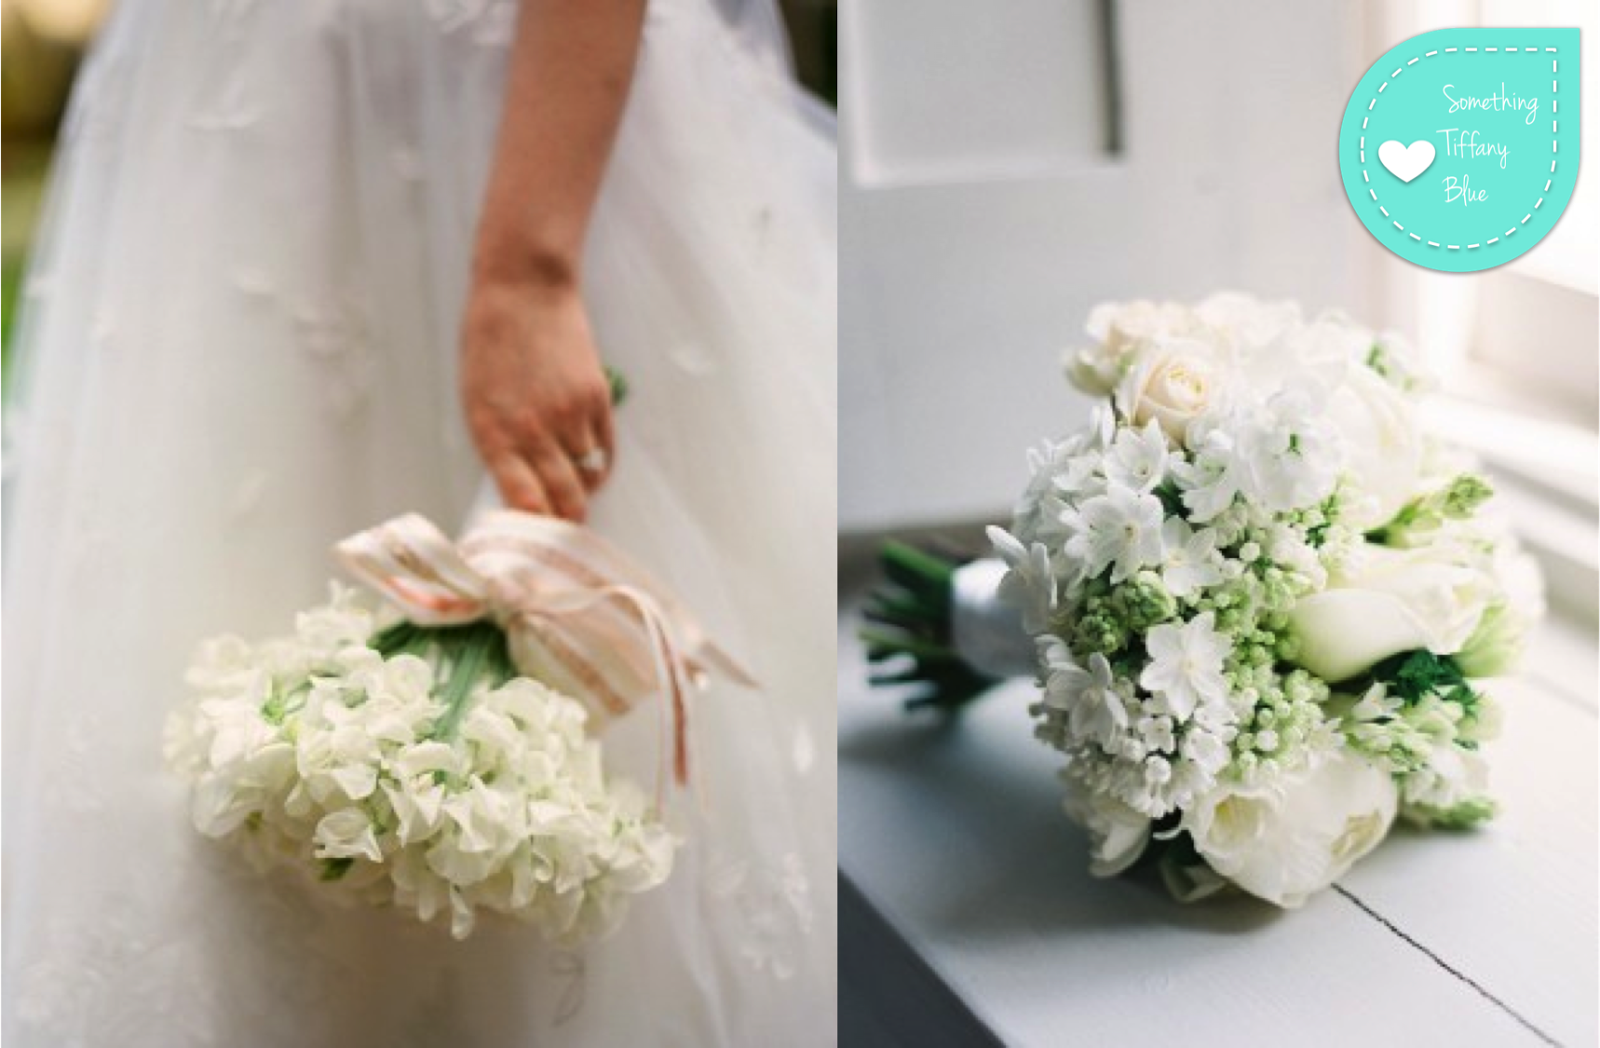 Bouquet Sposa Tiffany.Bouquet Sposa 2014 Fiori Bianchi E Romanticismo Something